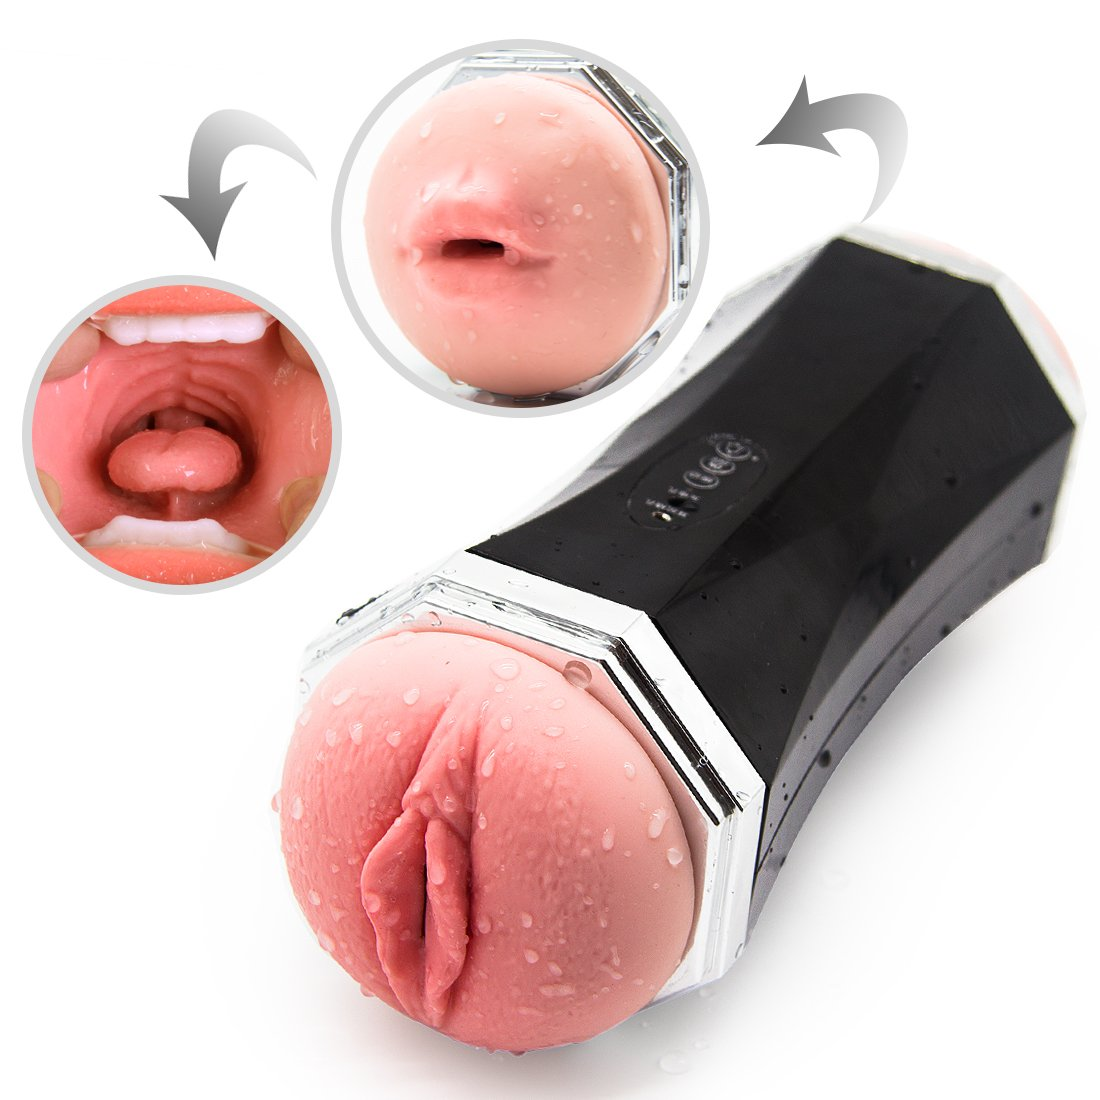 2 in 1 Double Hole Automatical Electric Male Sucker Toys Oral Cup Games USB Rechargeable Strong Massage Body Multiple Frequency Speed Play Women Voice Zongxun